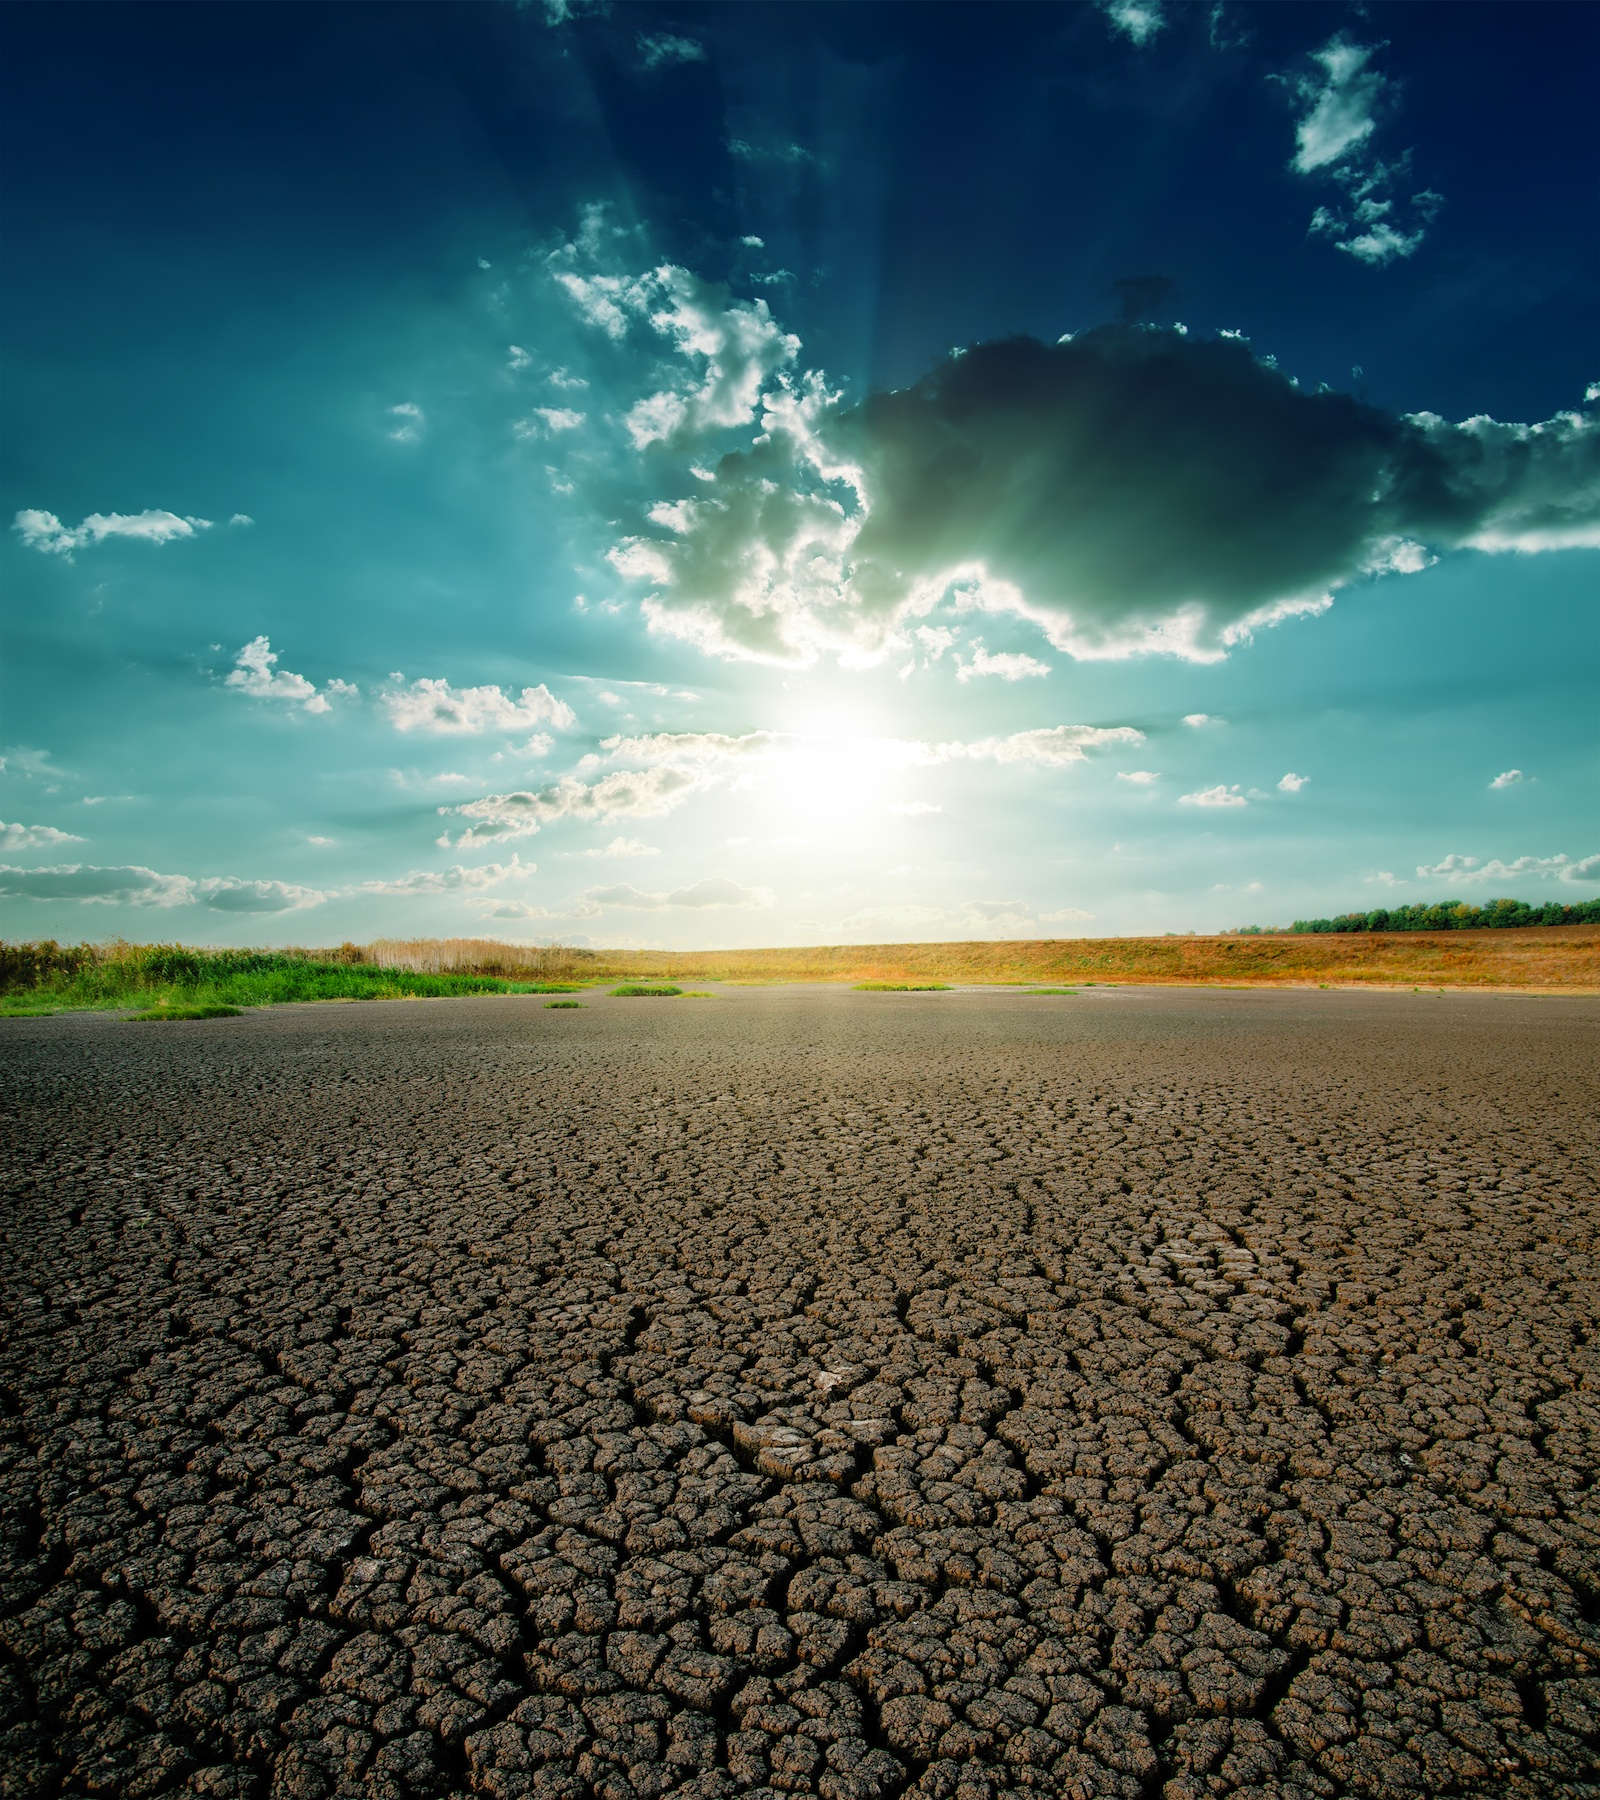 hot_weather_sun_drought